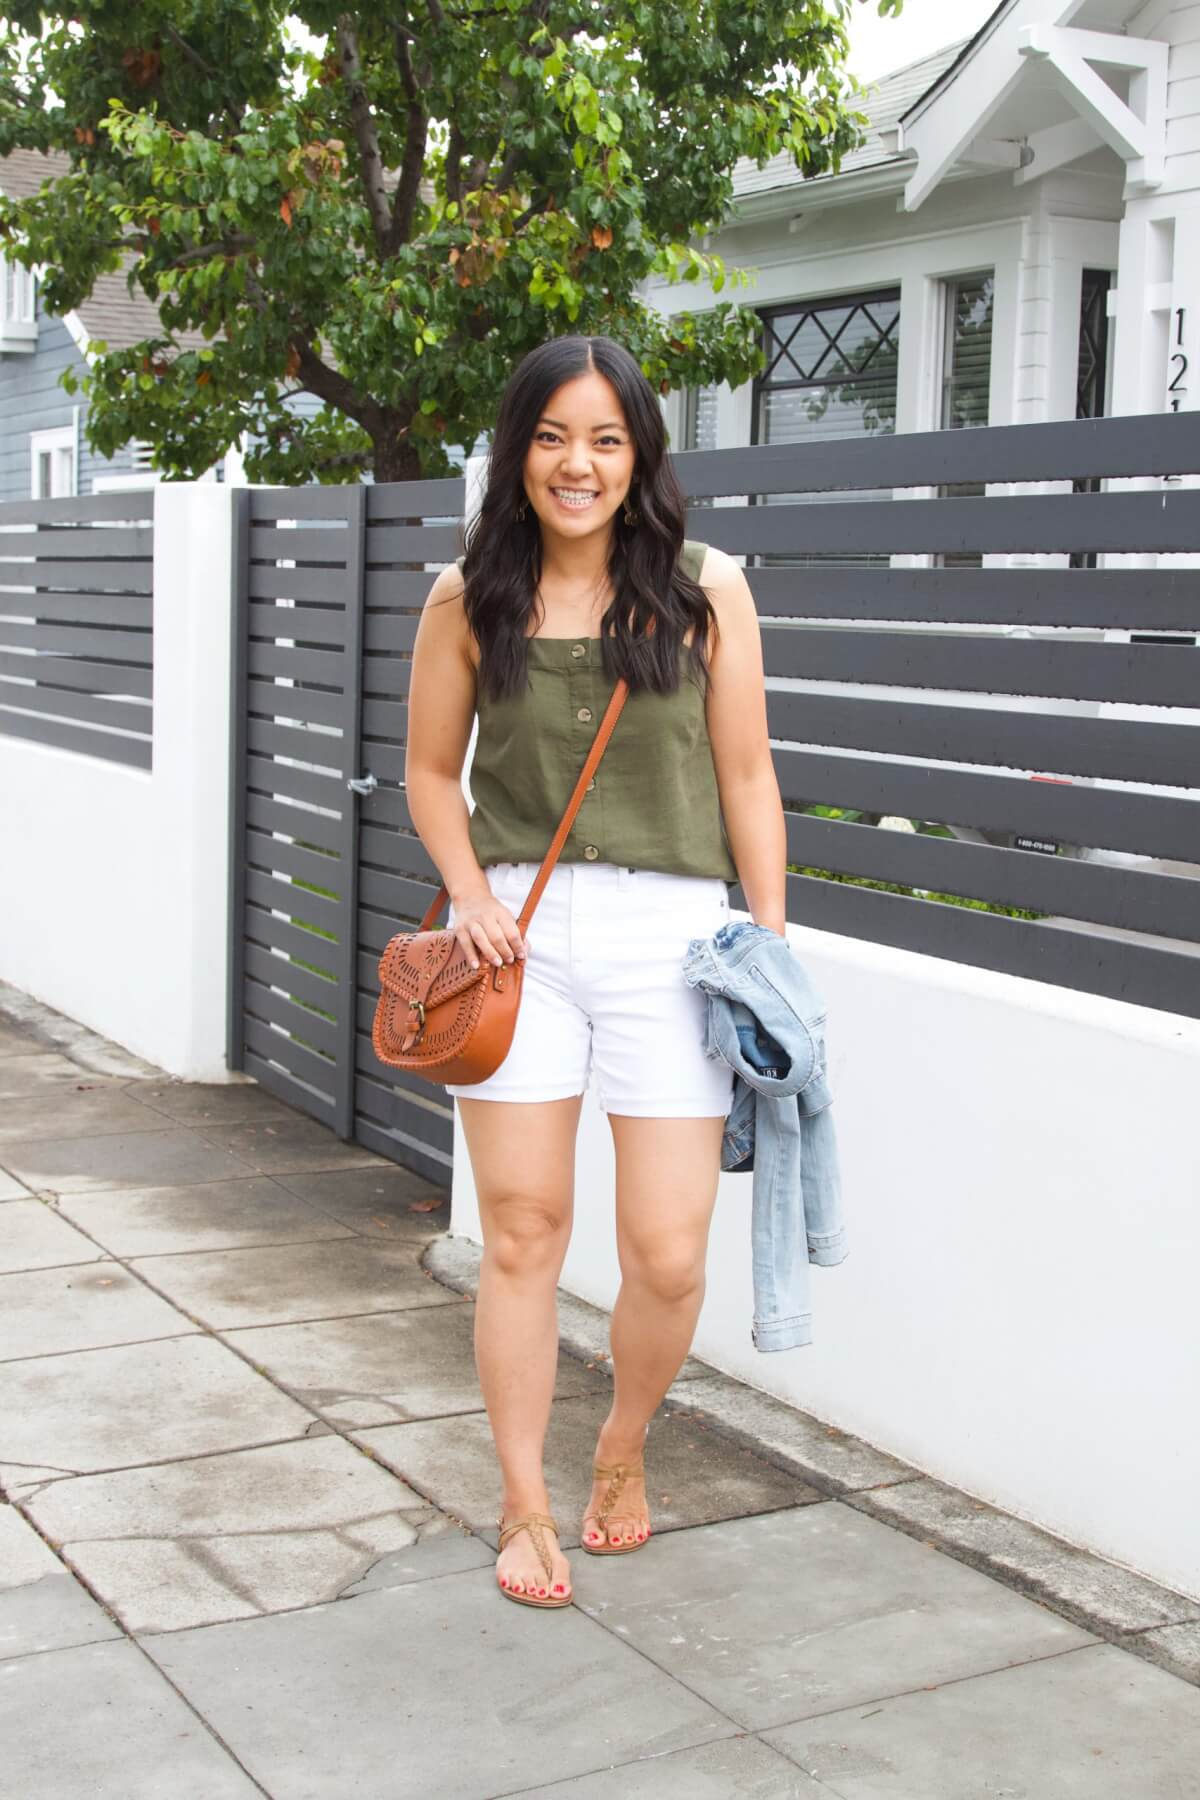 Dressy Casual Summer Outfit: olive button down linen sleeveless top + white shorts + denim jacket + tan t-strap sandals + cognac crossbody bag